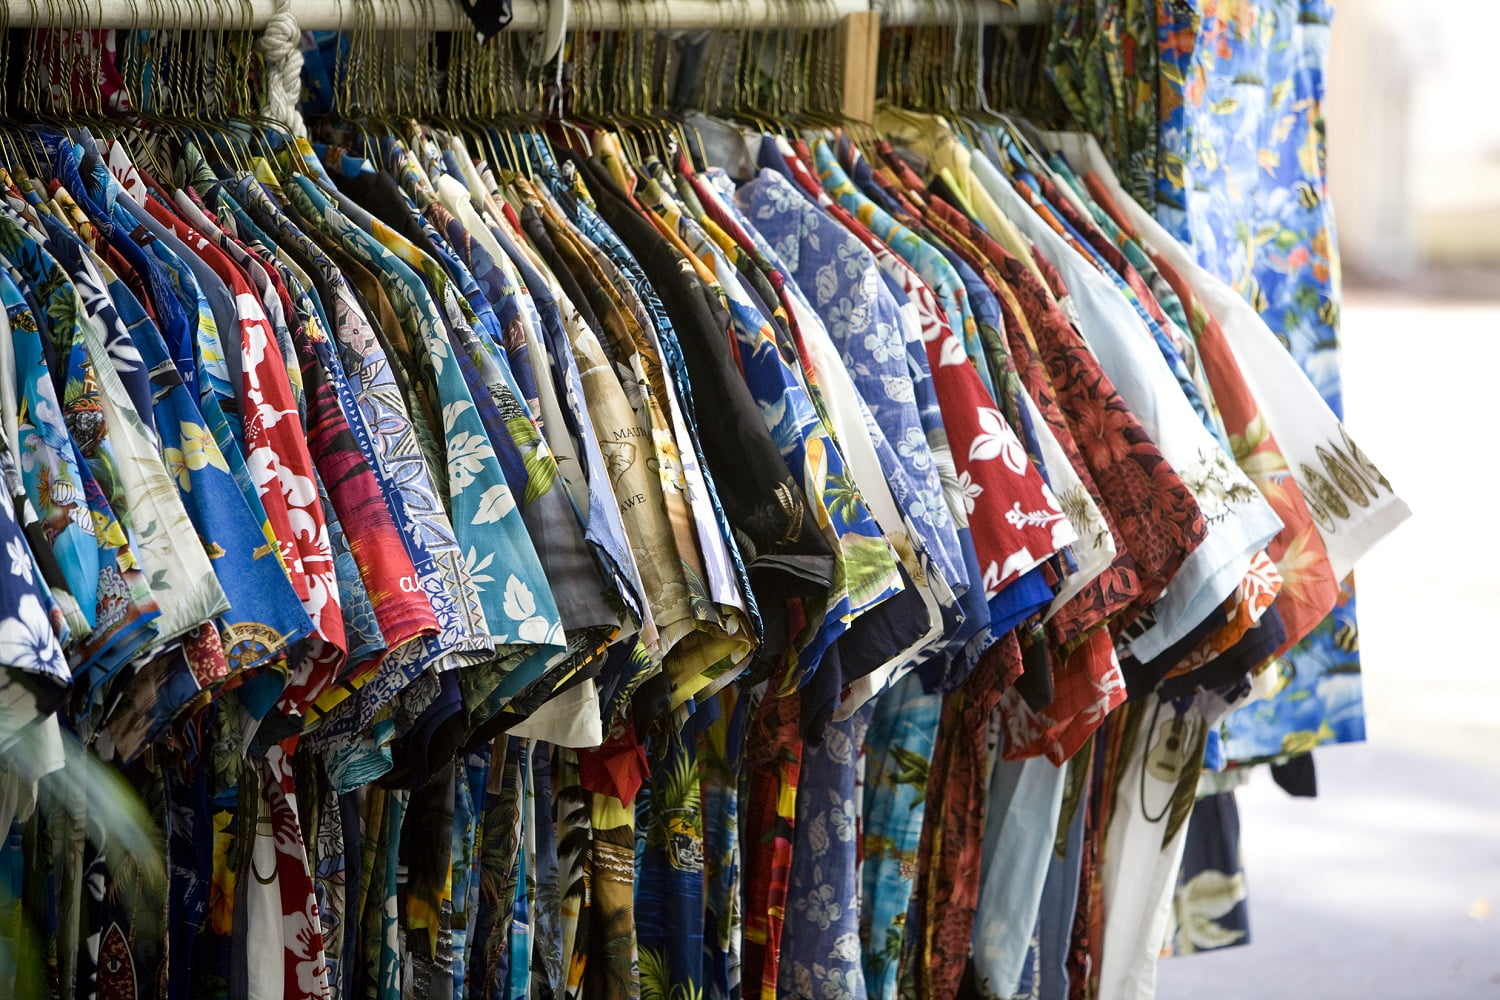 Rack of Hawaiian shirts at the Shops at Wailea